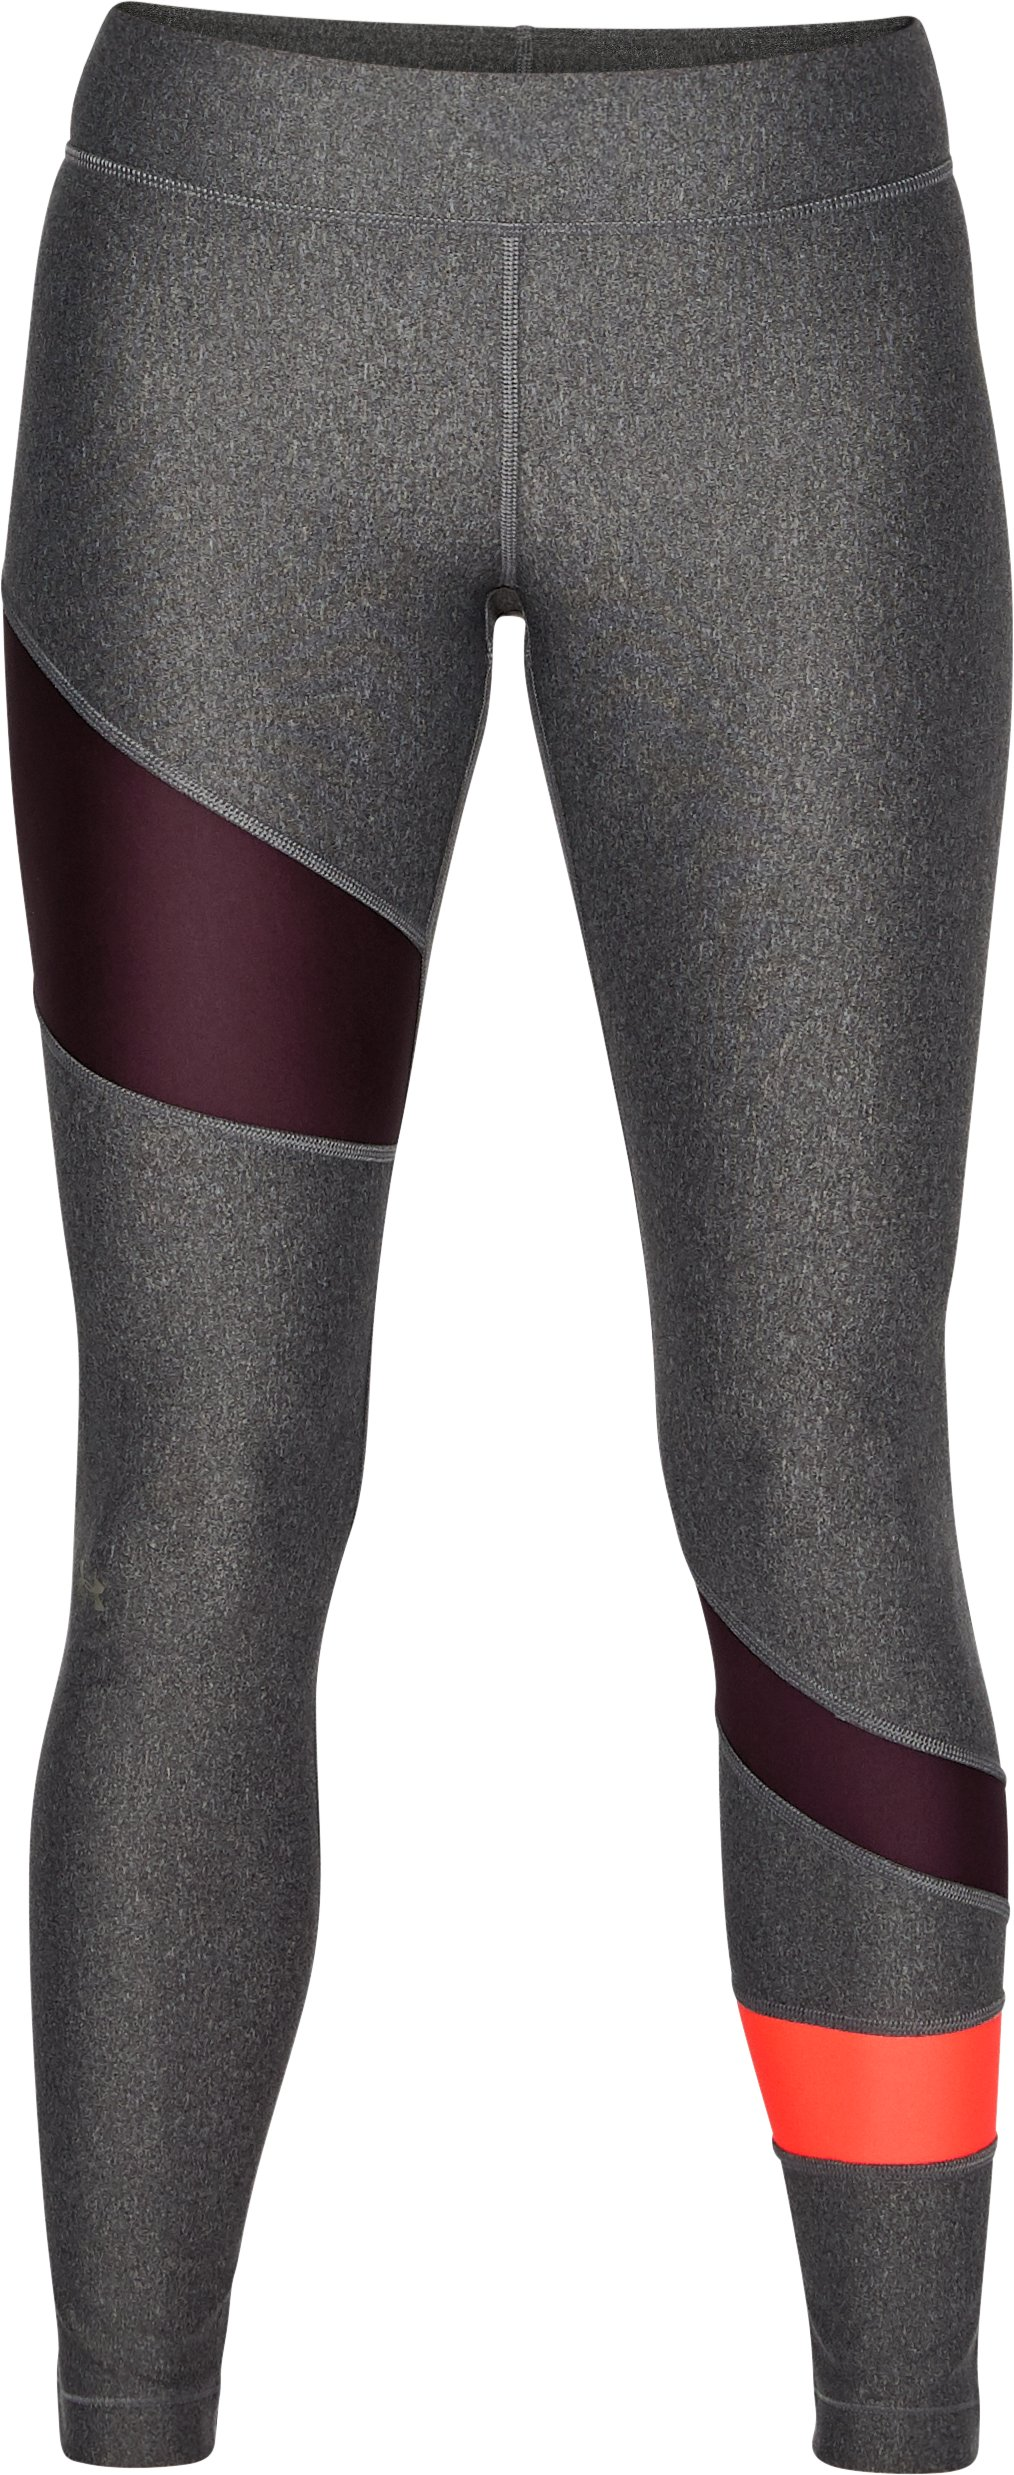 Women's HeatGear® Armour Leggings, Carbon Heather, undefined